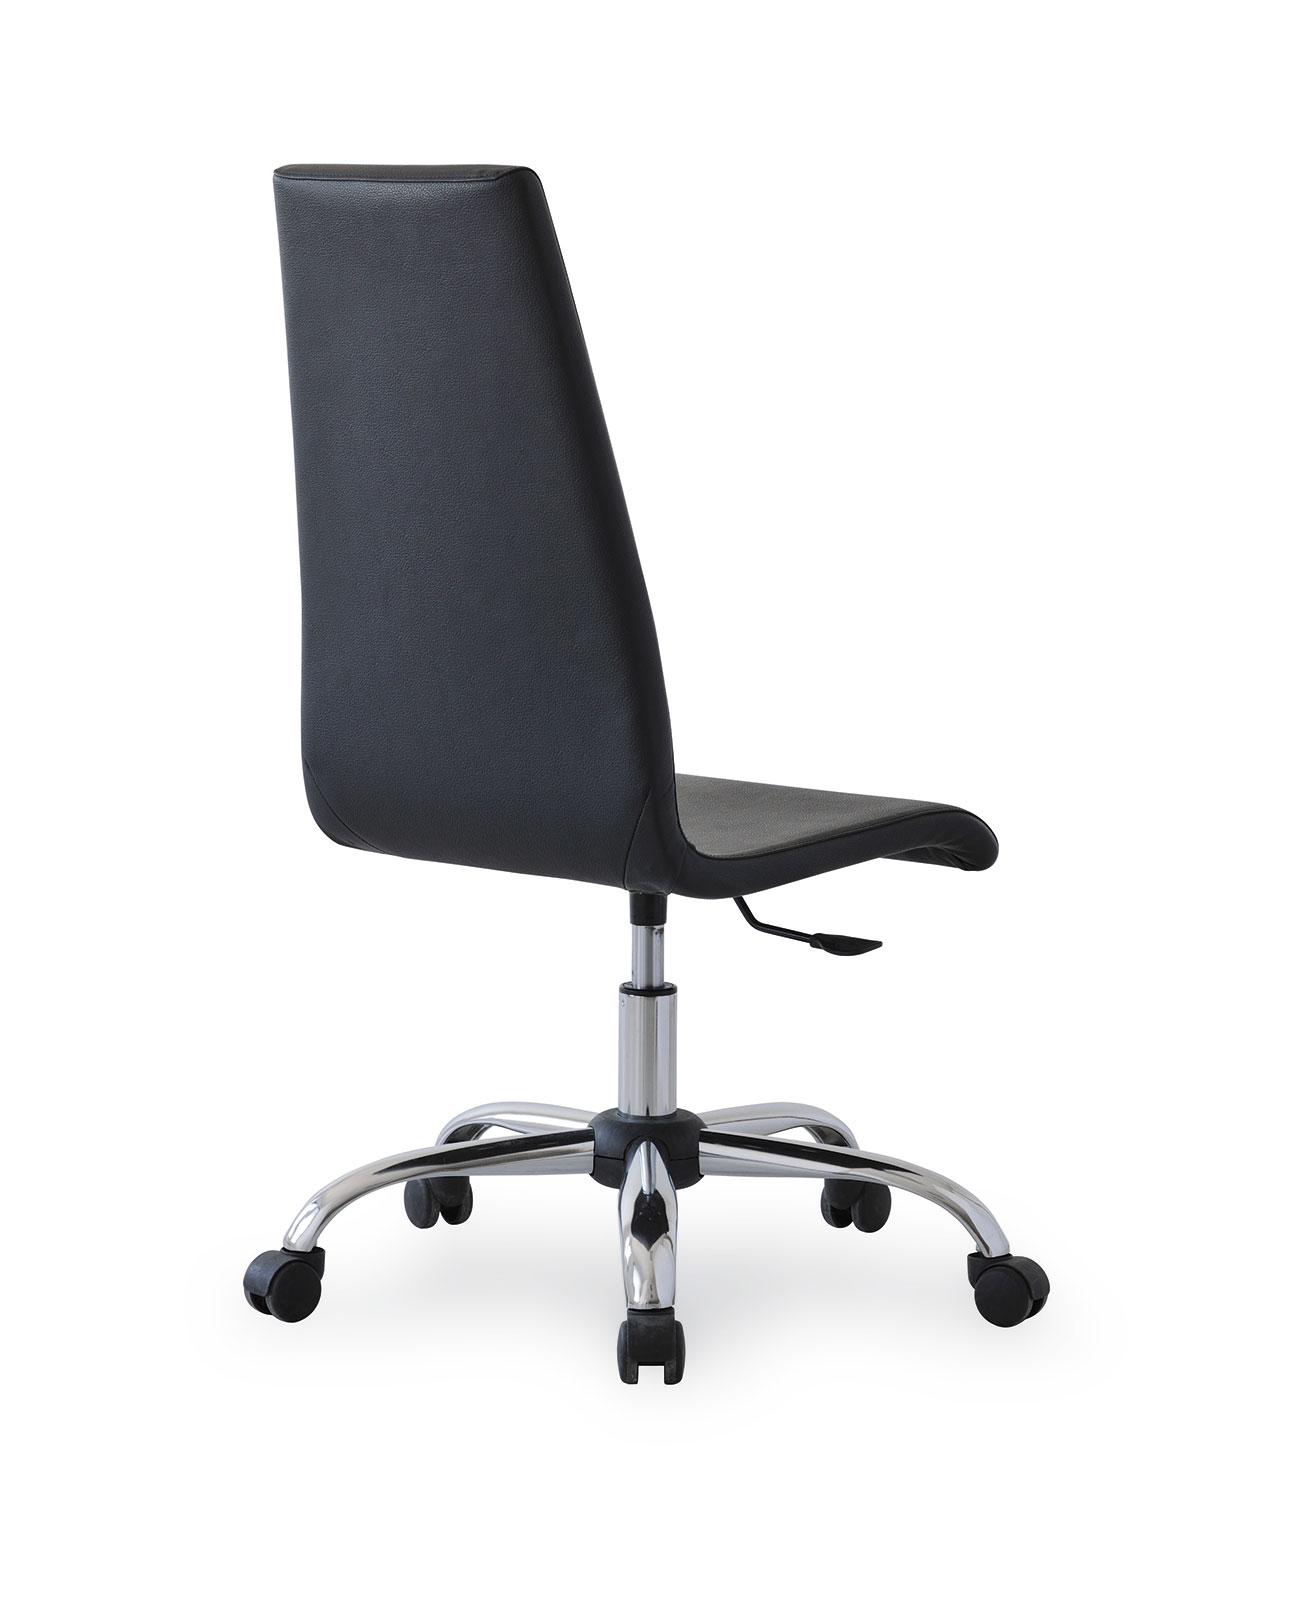 Luxury office chair, swivel chair, adjustable height swivel office armchair